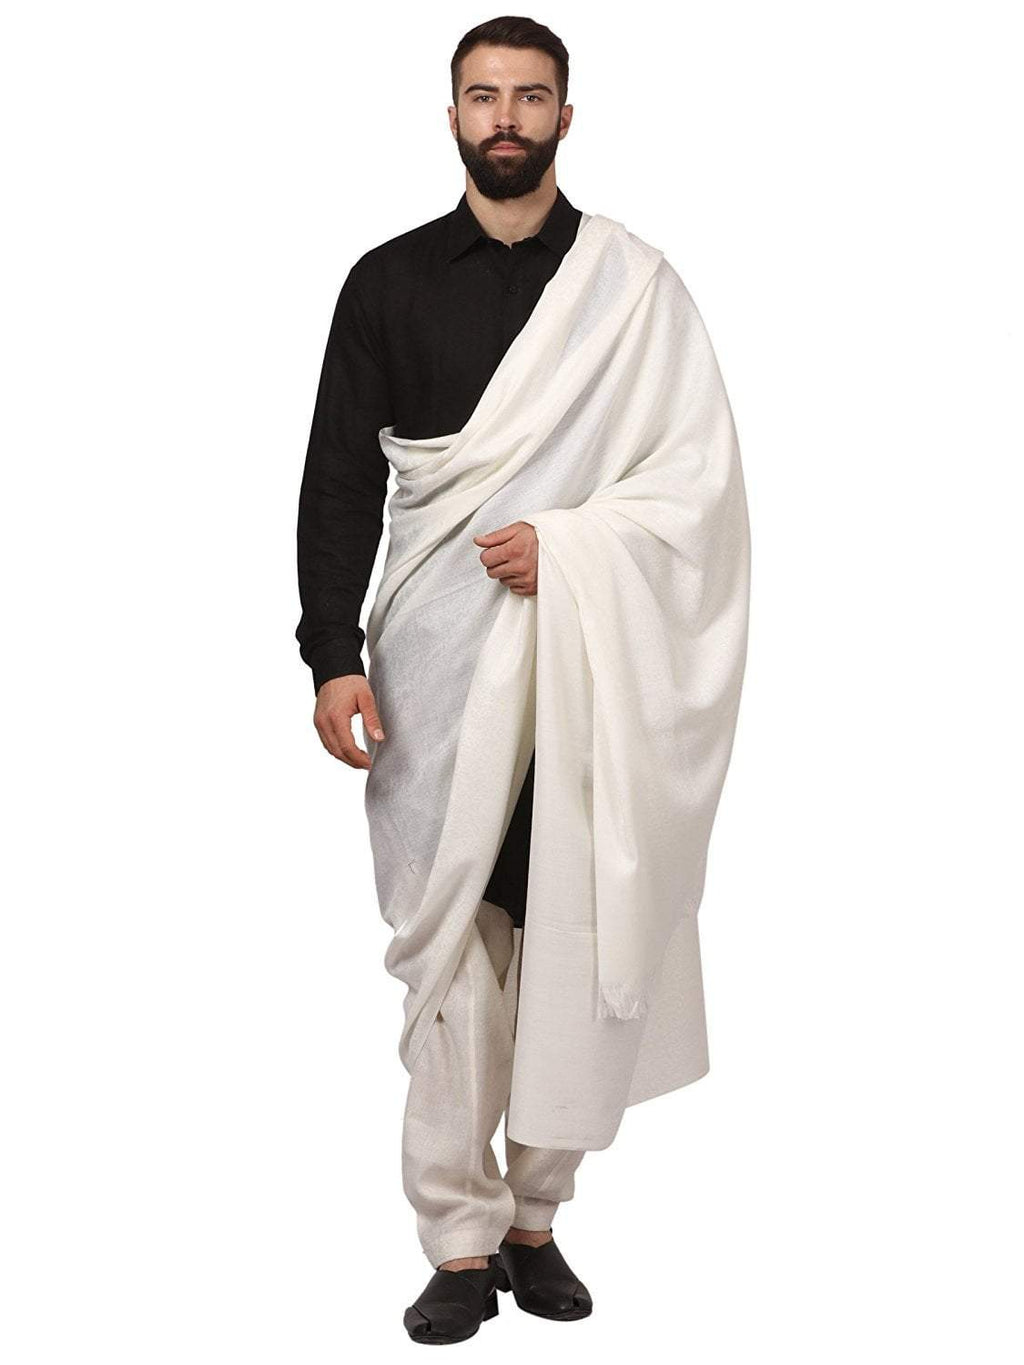 Pashtush India Cream Pashtush Woven Jacquard Design Mens Shawl, Light Weight Australian Merino Wool, Warm, Full Size